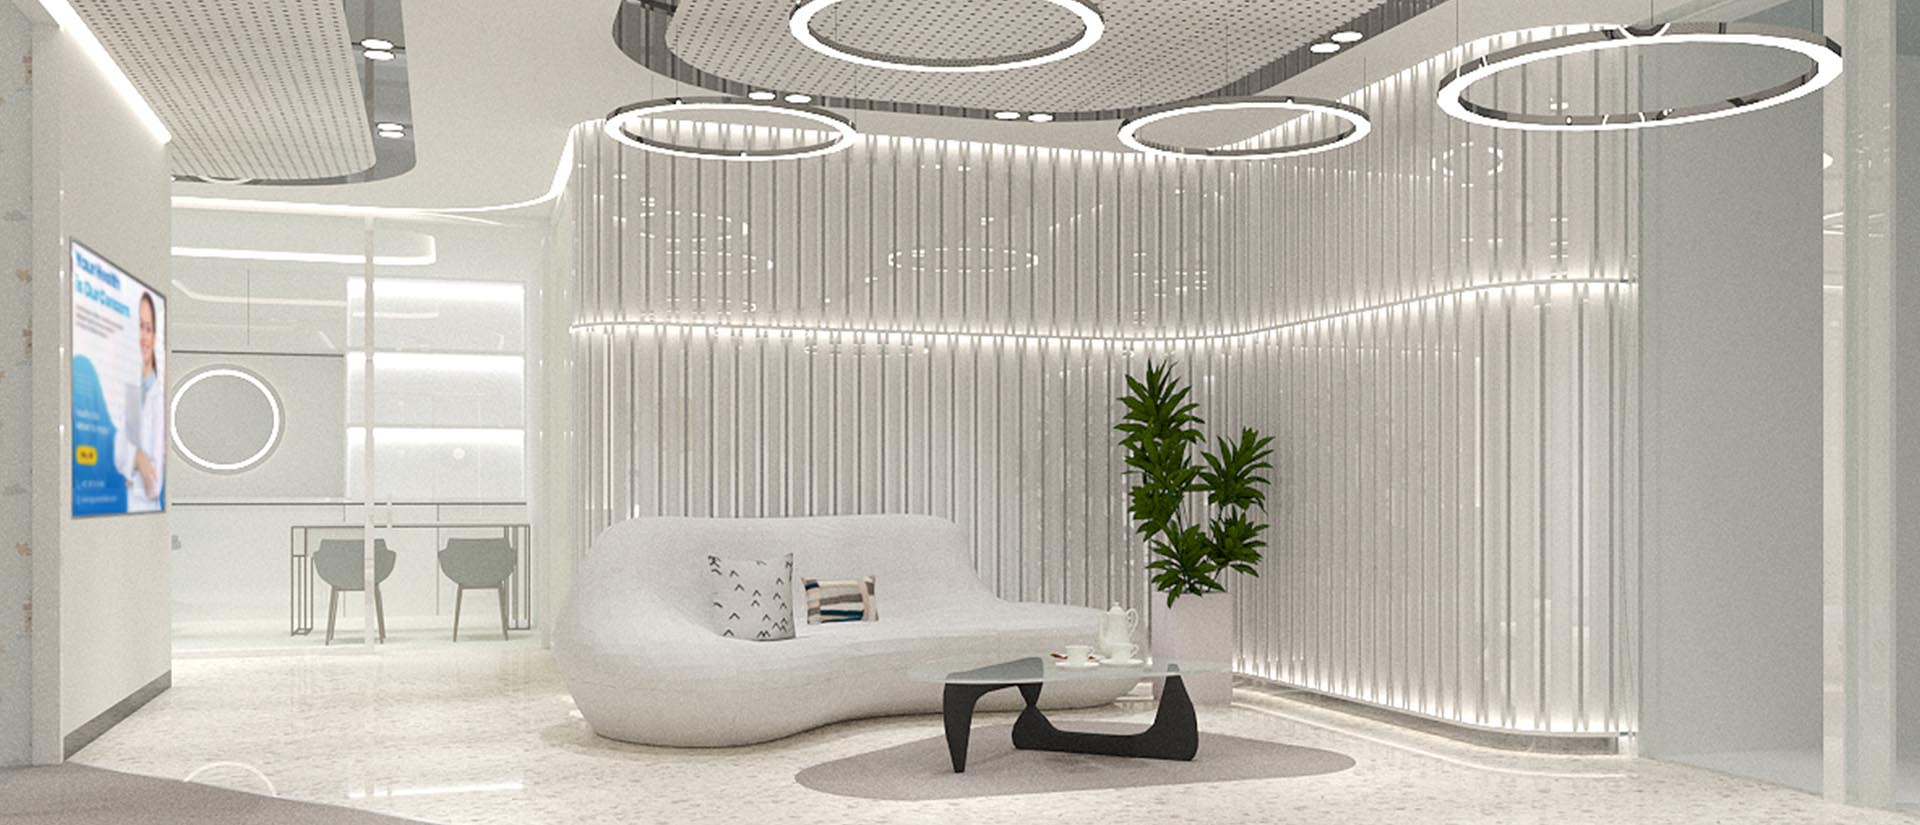 Projects-MedC_Collins Street 2